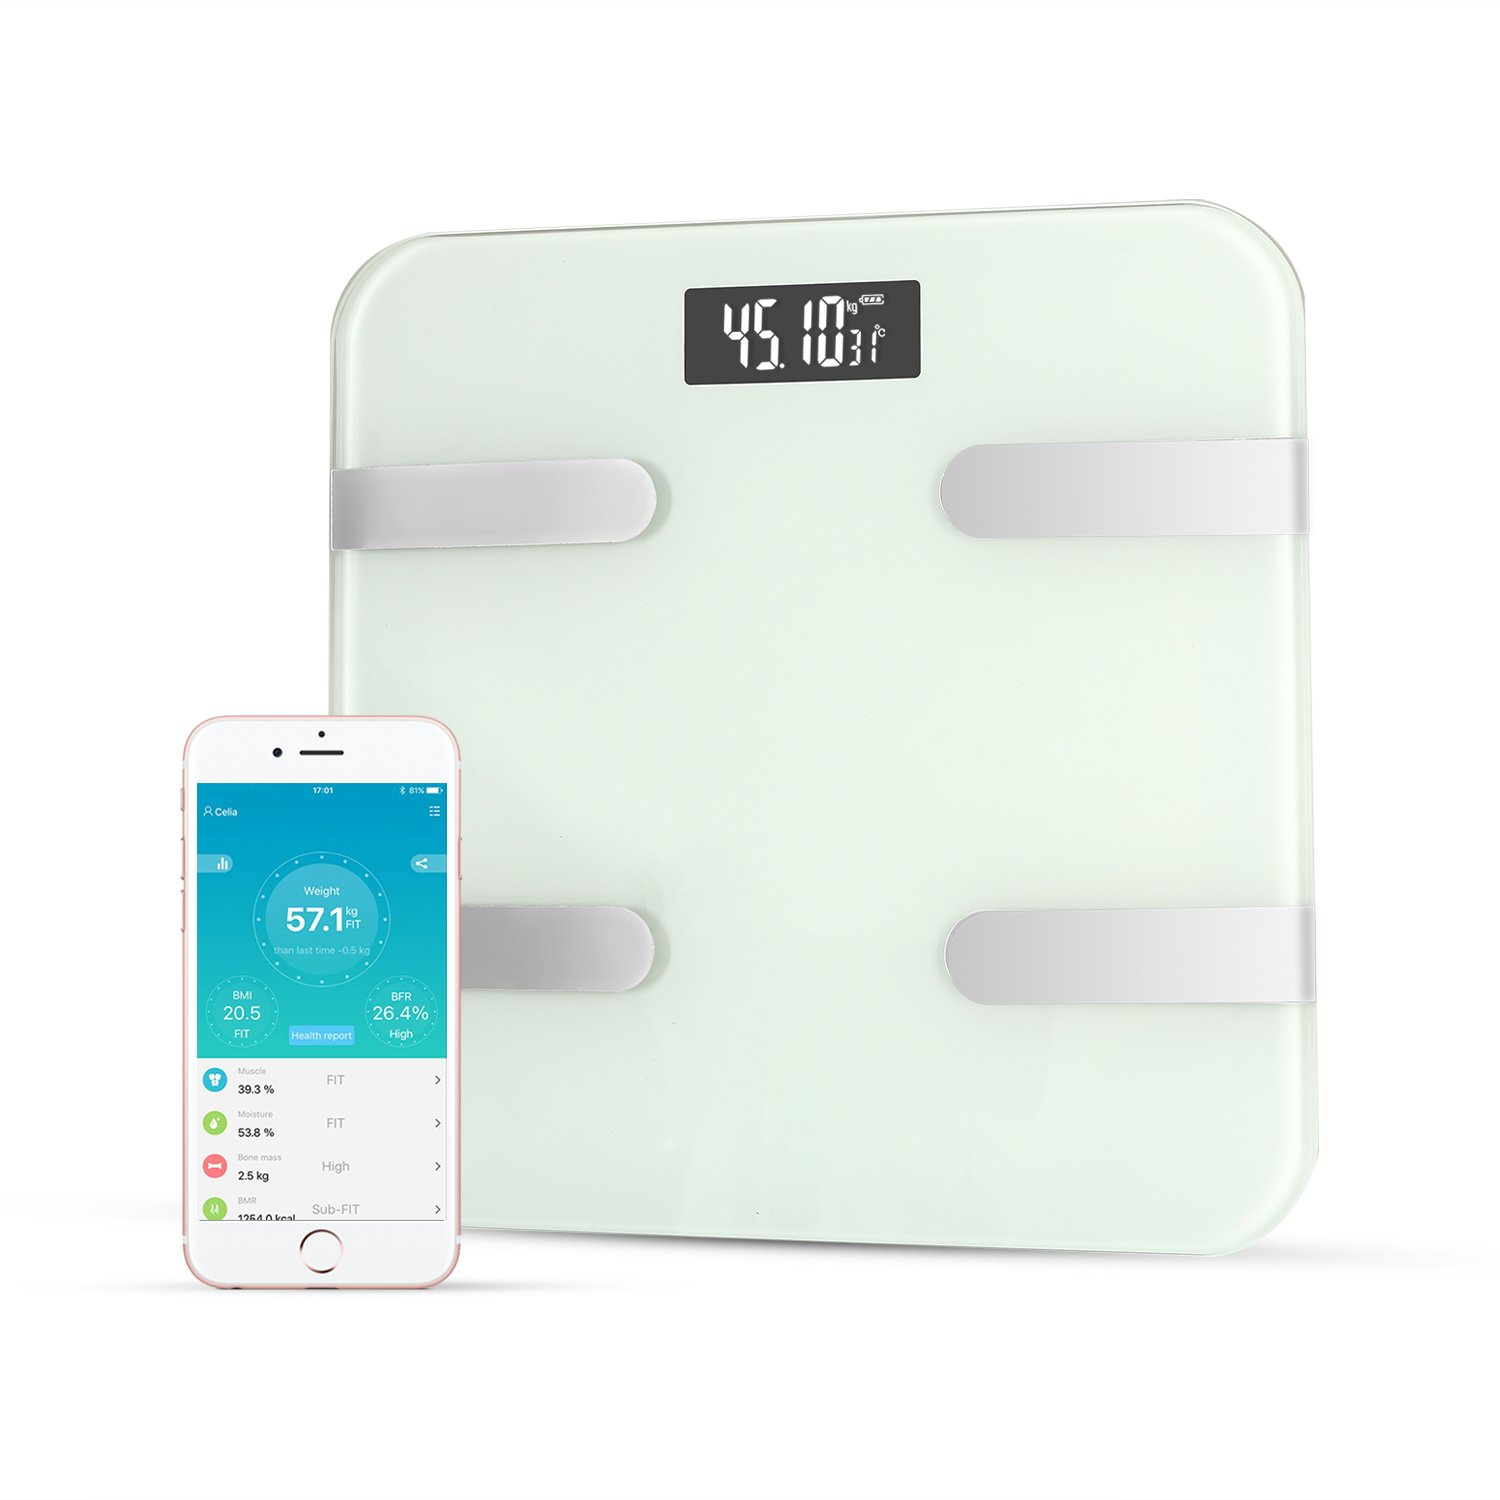 LUOYIMAN Body Fat Scale Body Composition Scale Smart Weight Scale Fat BMI Digital Scale Backlit LCD Precision/Accurate Measurements APP for iOS Android (White)